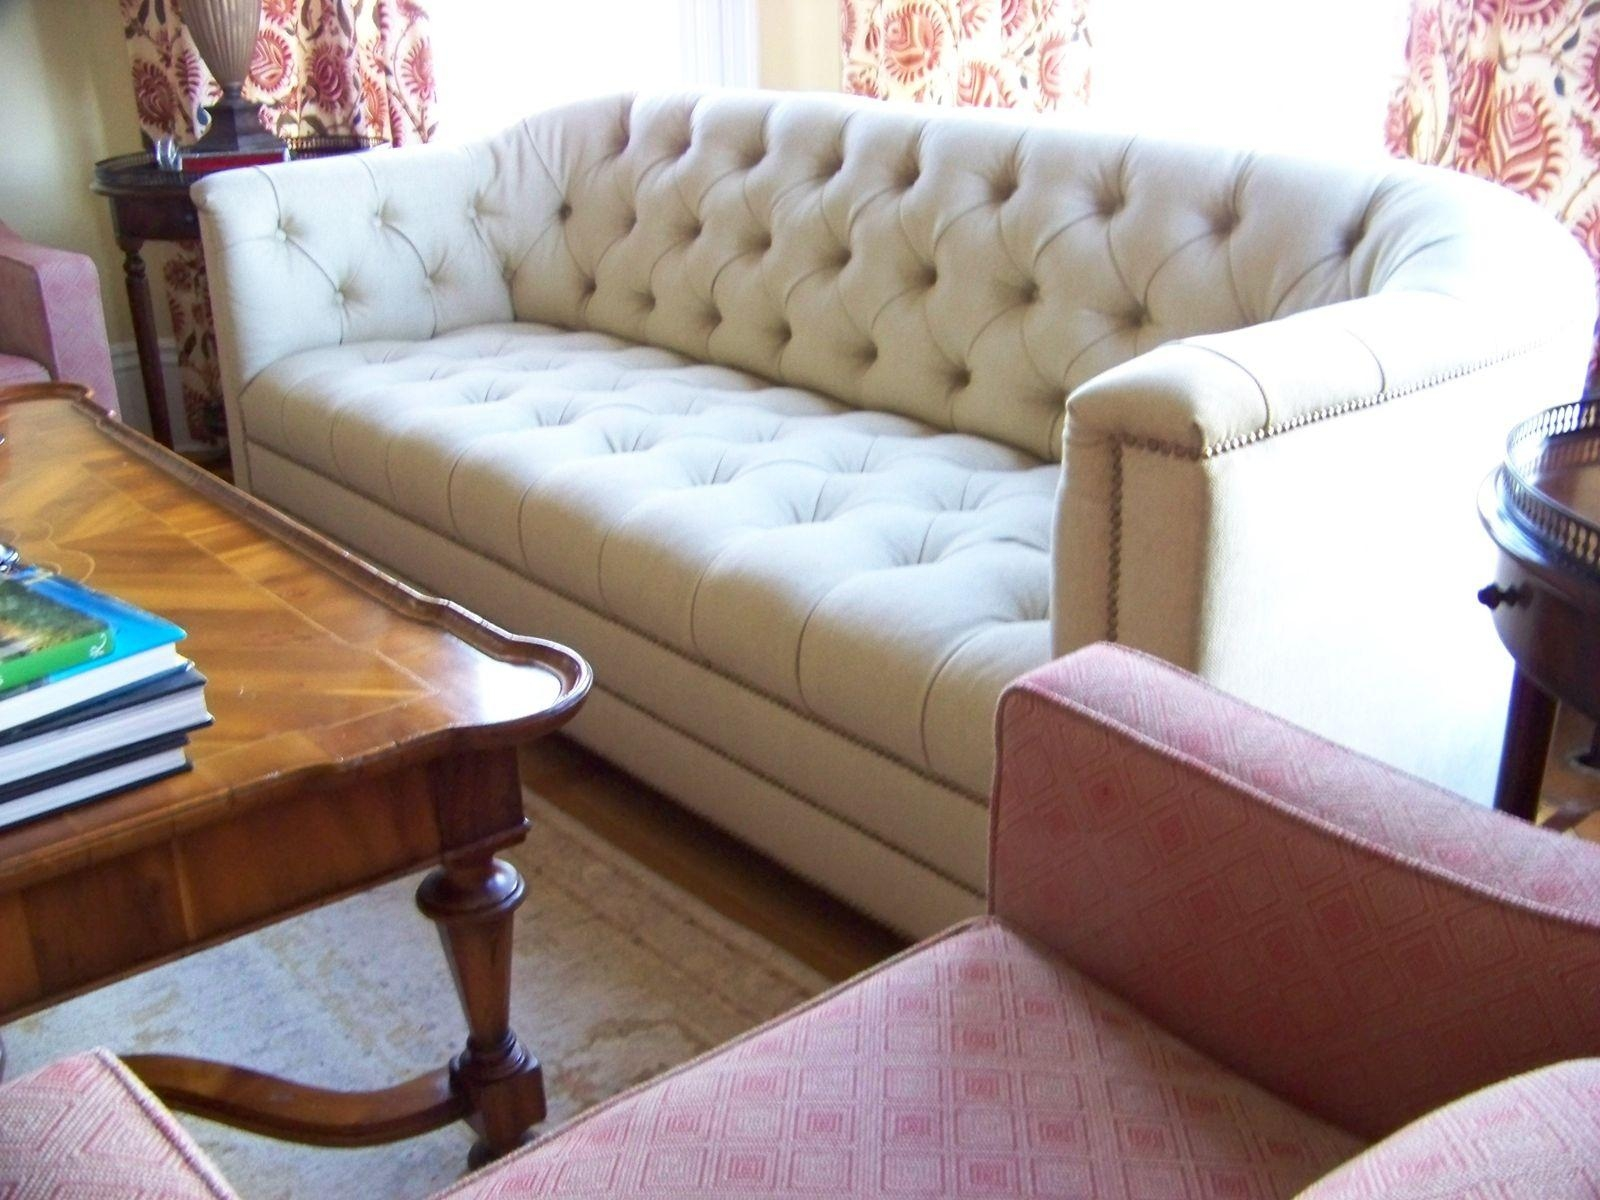 custom sofas sectional and leather couches custommade throughout custom made sectional sofas image : custom made sectional - Sectionals, Sofas & Couches